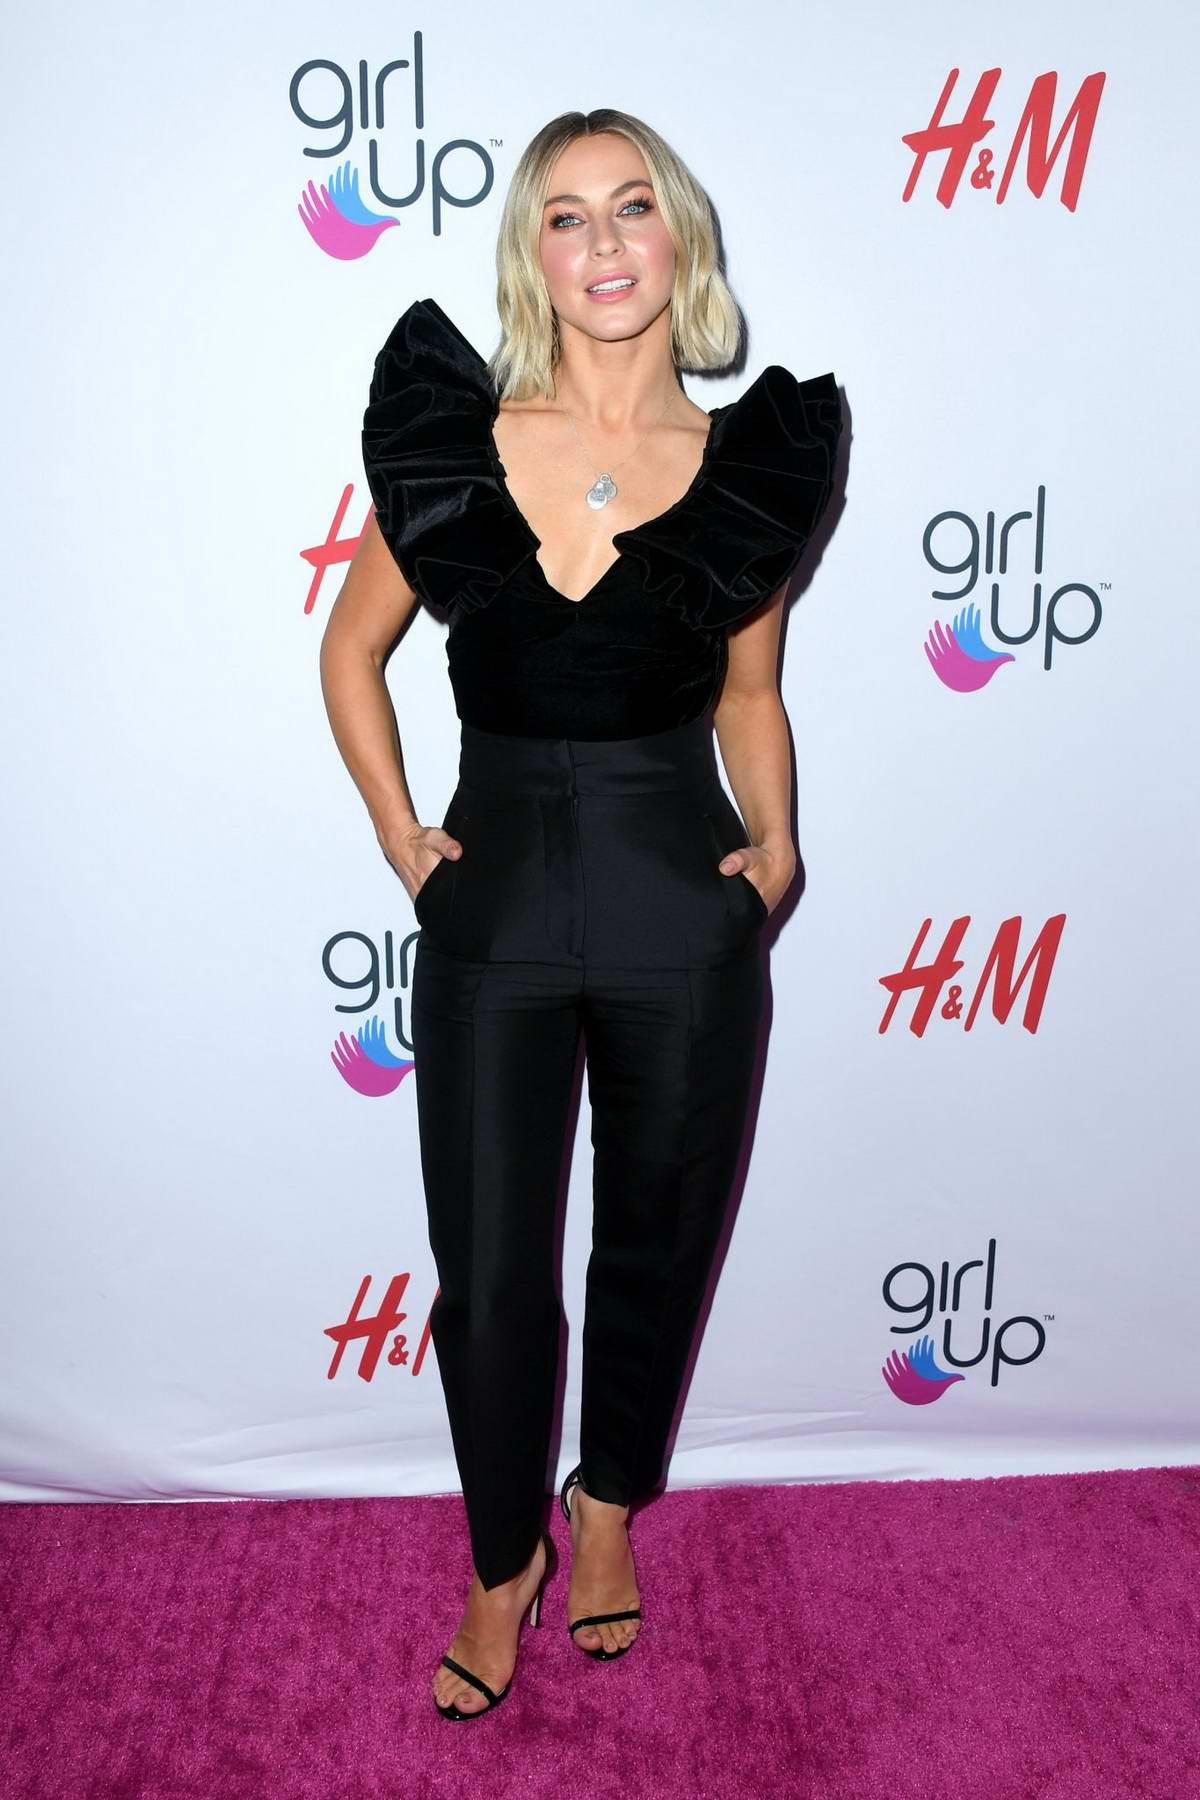 Julianne Hough attends the 2nd Annual Girl Up #GirlHero Awards at the Beverly Wilshire Hotel in Beverly Hills, Los Angeles